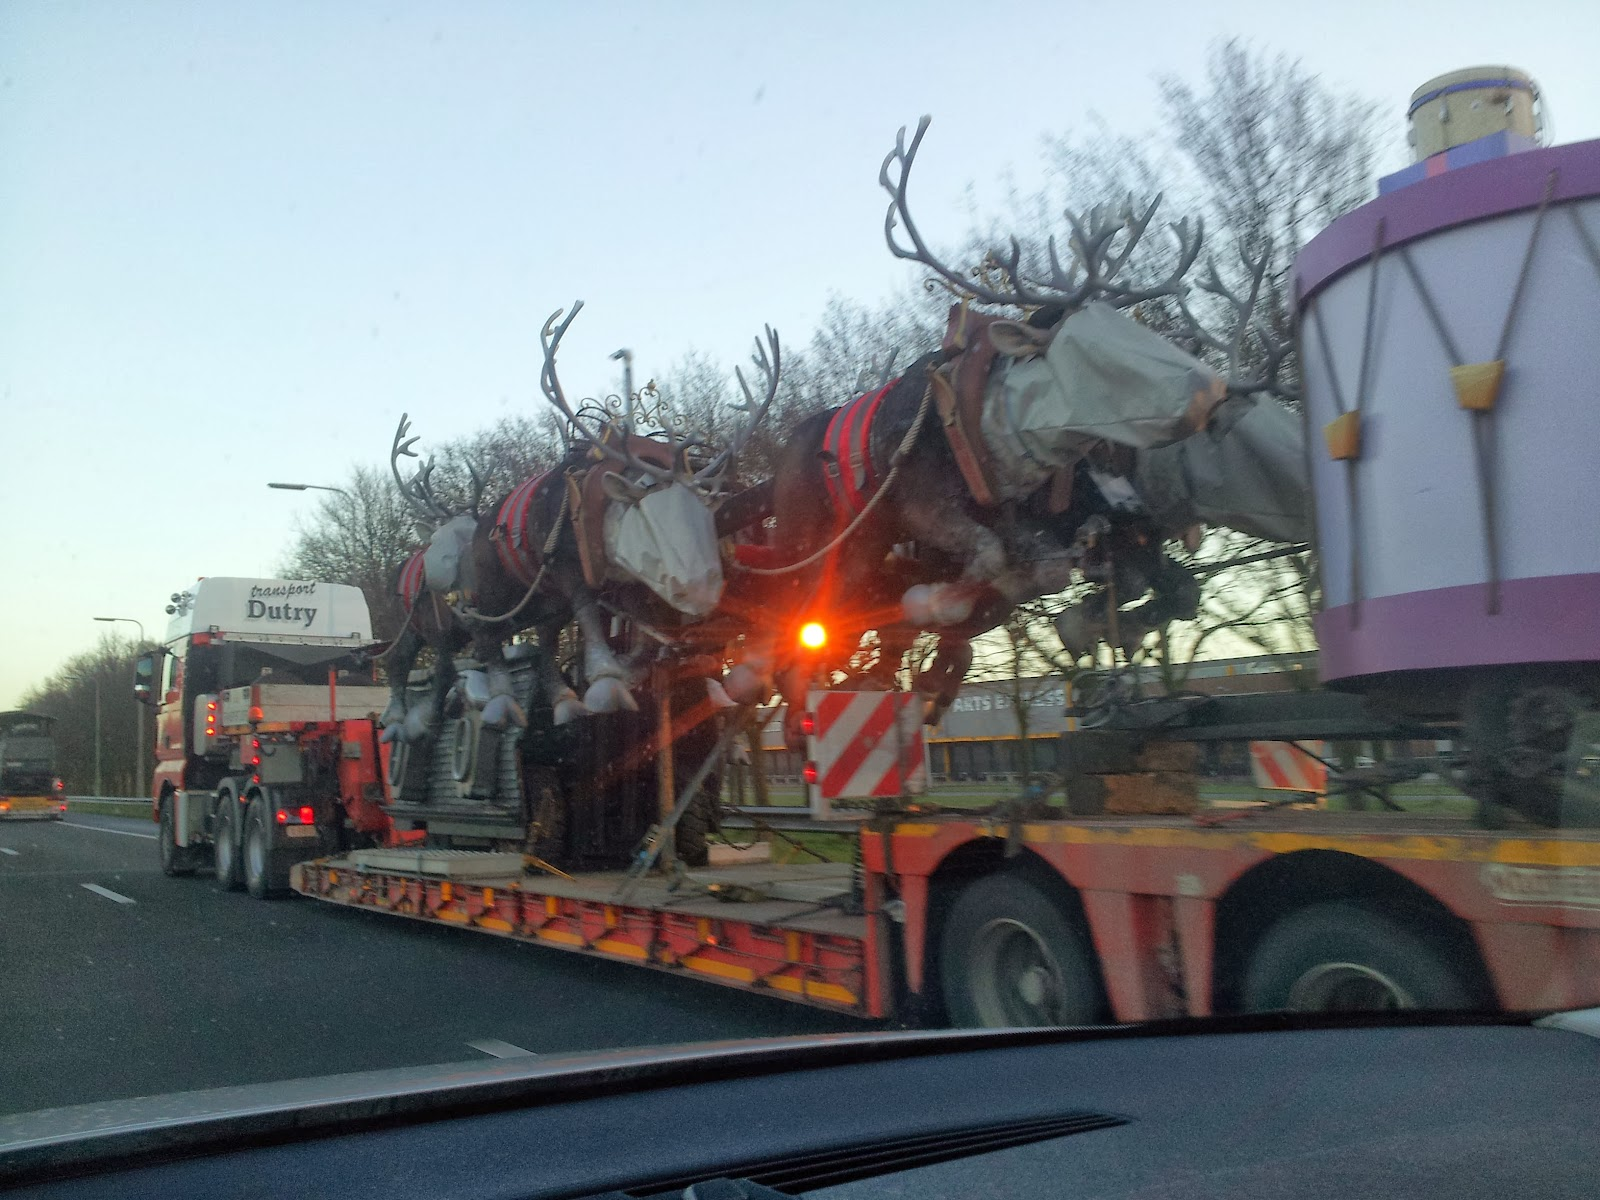 I thought reindeer flew